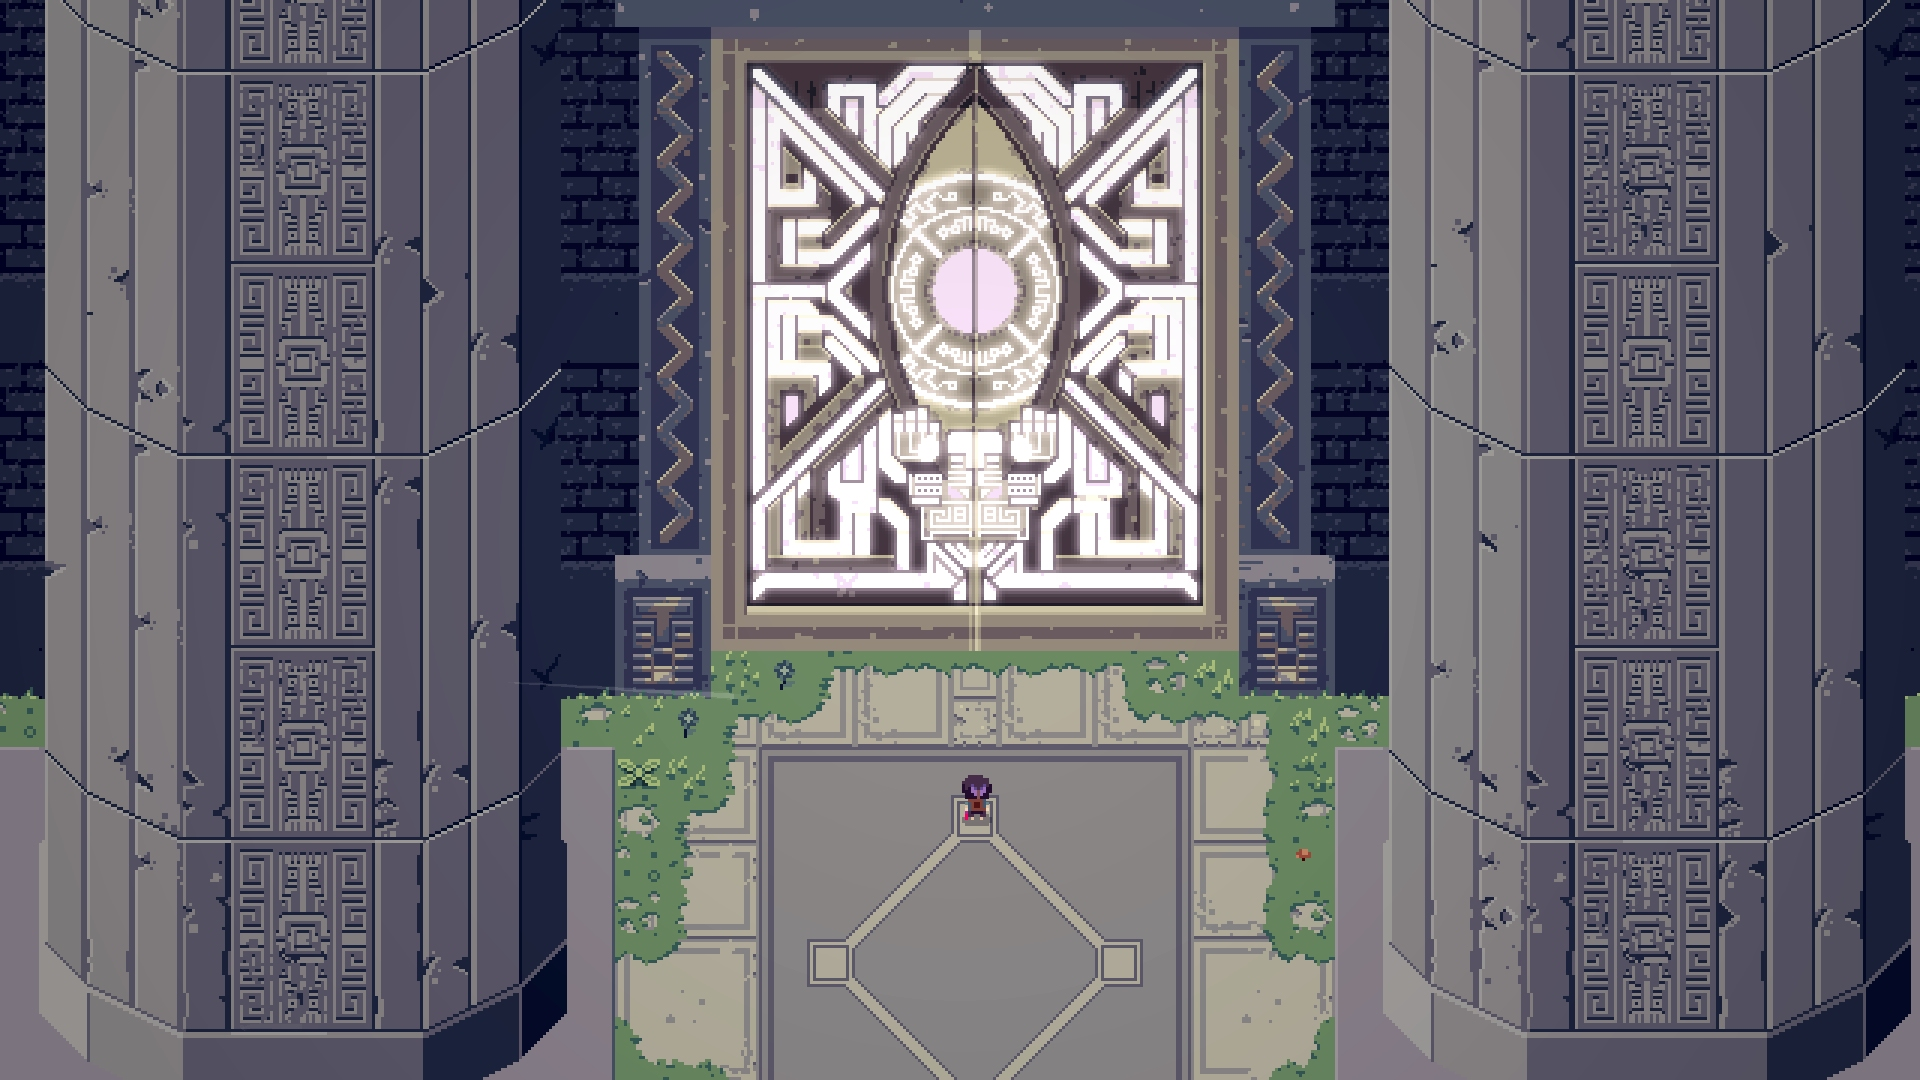 Titan Souls borrows elements from Shadow of the Colossus and Dark Souls for its intense adventure